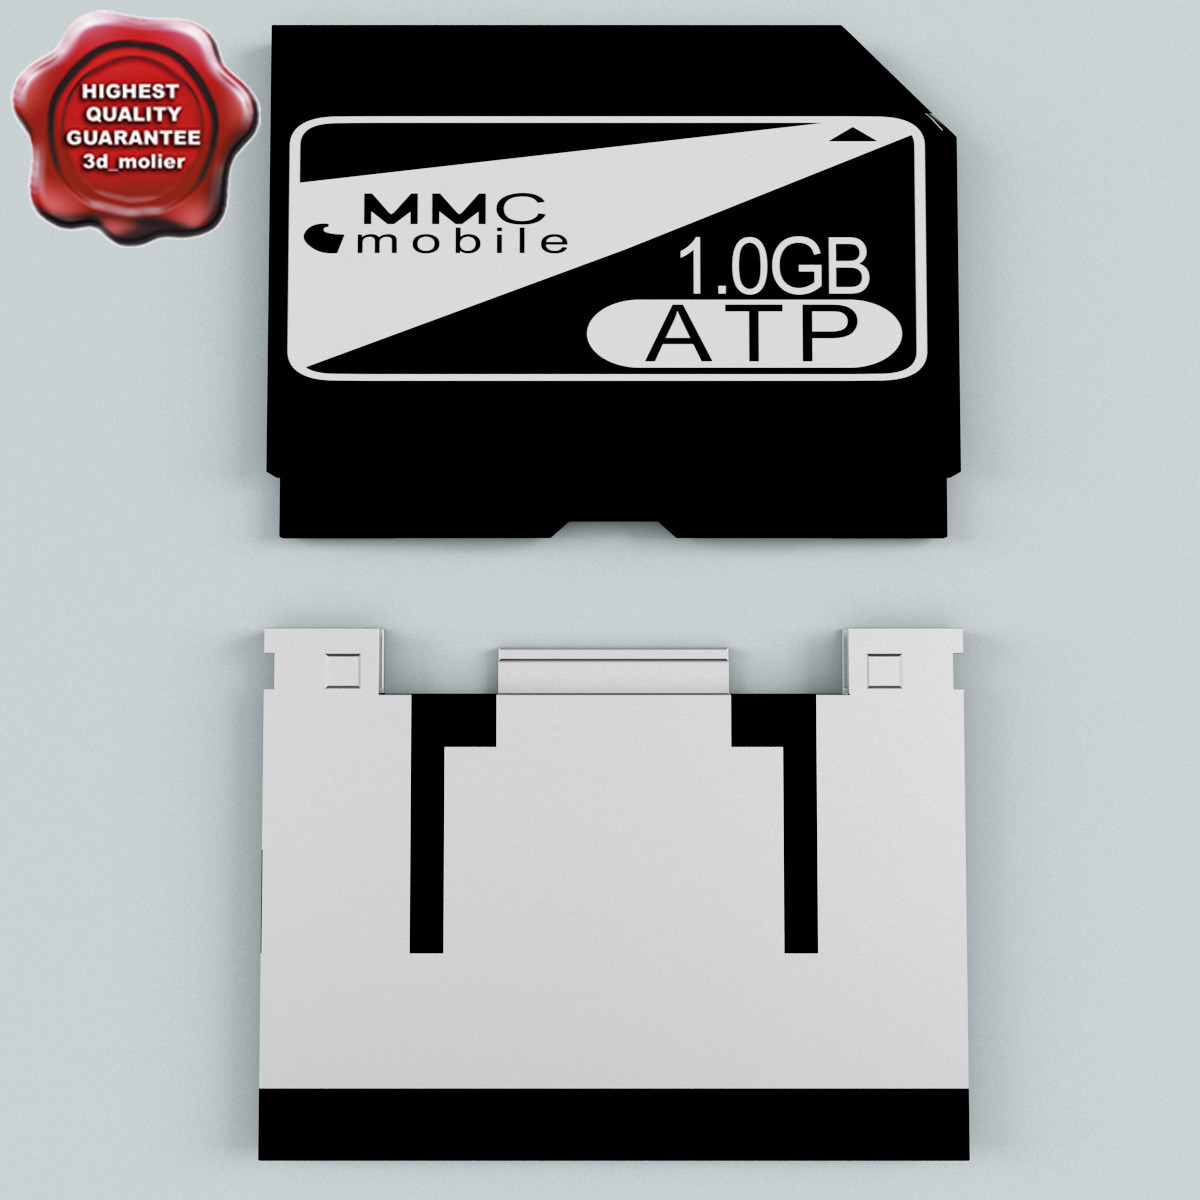 3d memory card mmc mobile